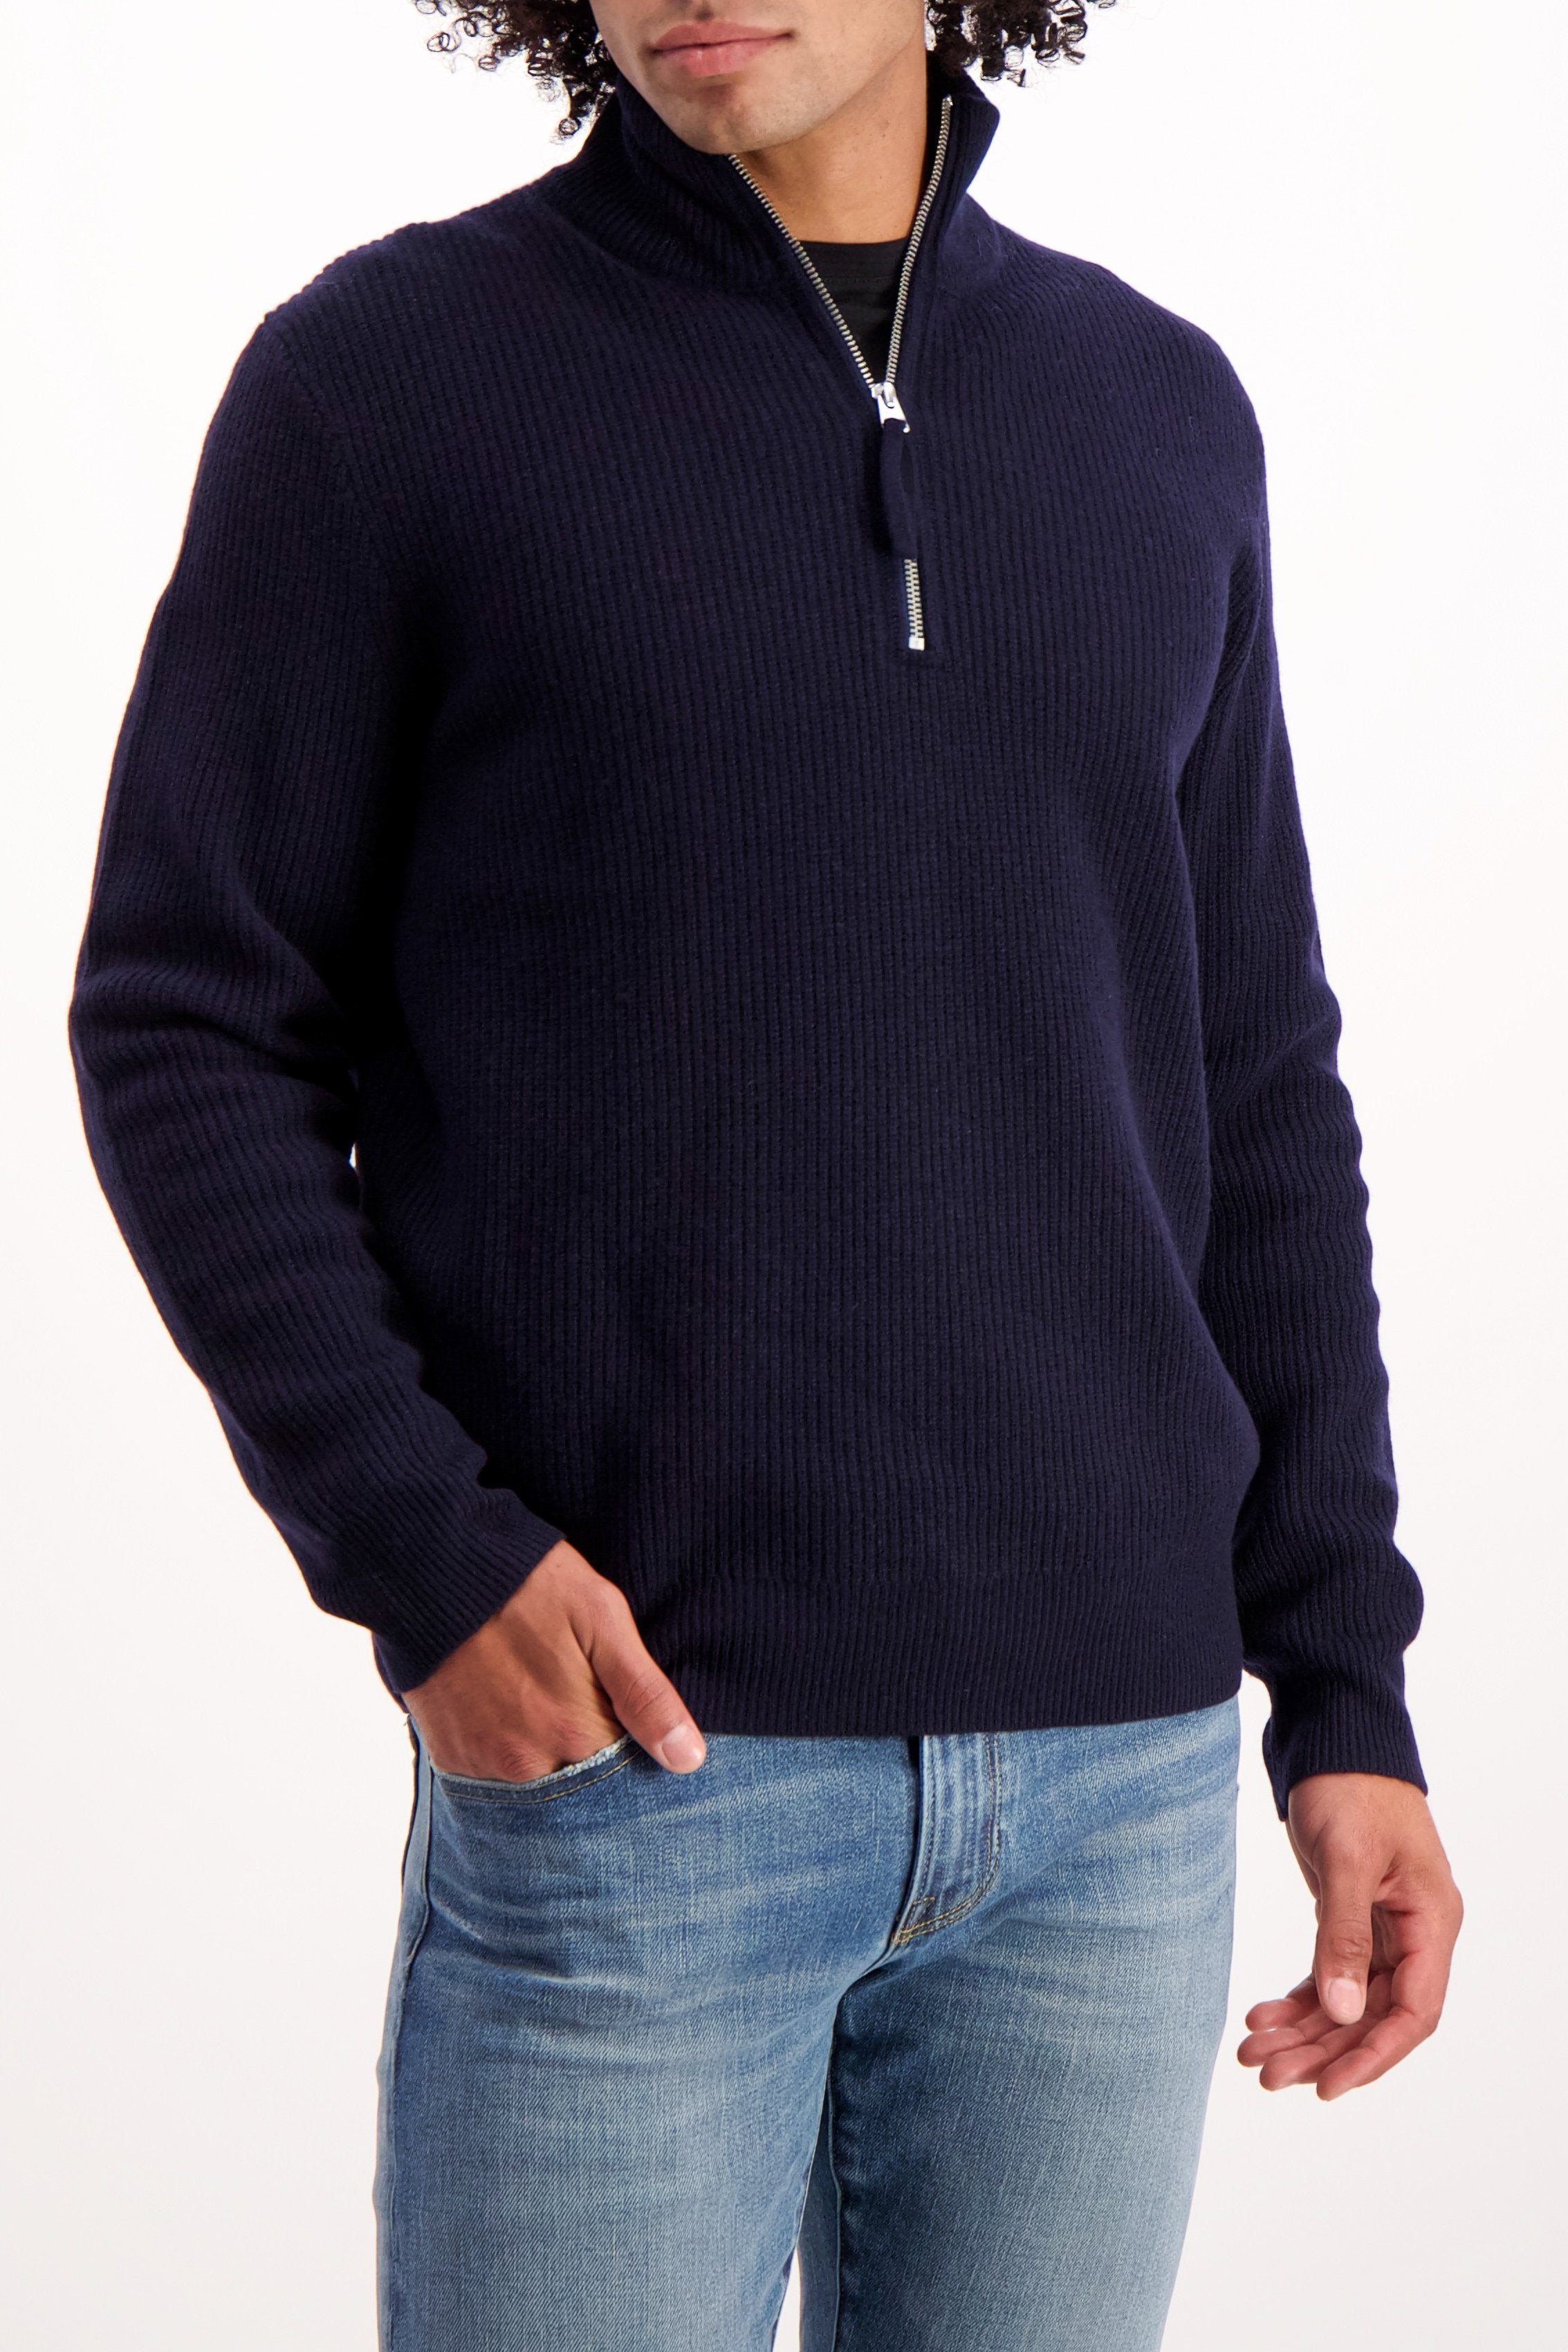 Front Crop Image Of Model Wearing Alex Mill Men's Extra Fine Merino Half Zip Sweater Navy